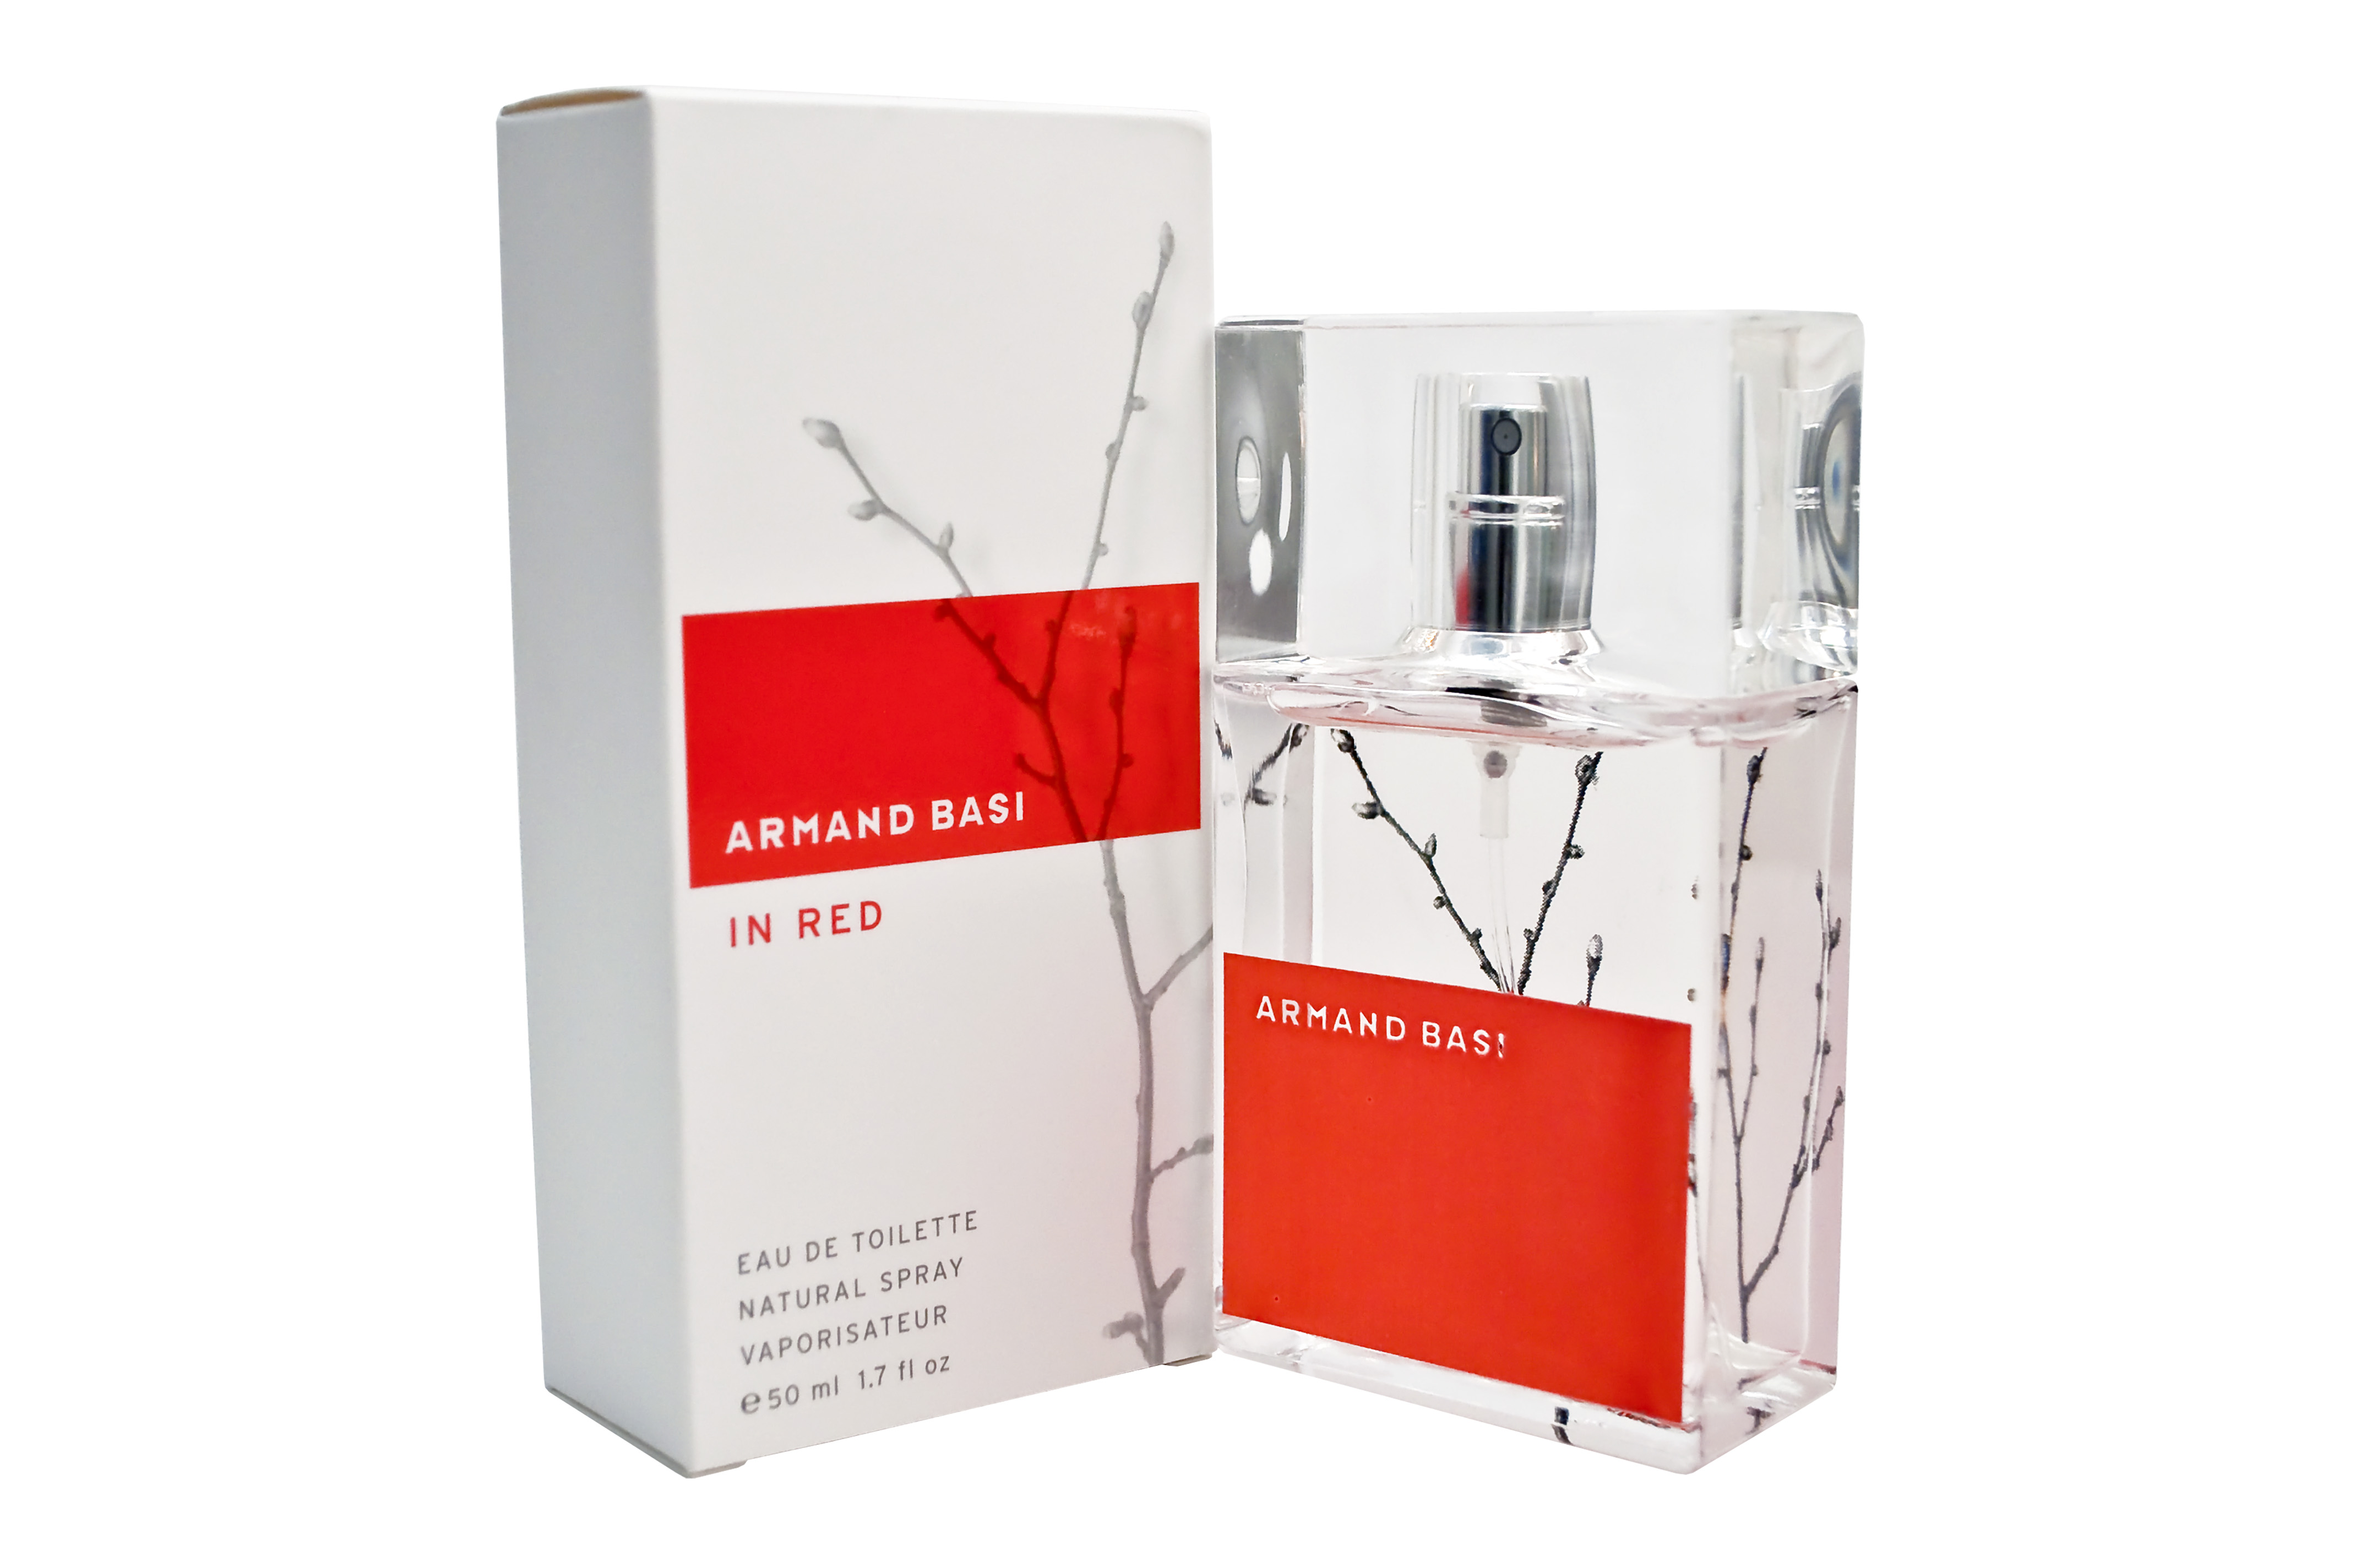 Armand Basi In Red Eau de Toilette 50ml